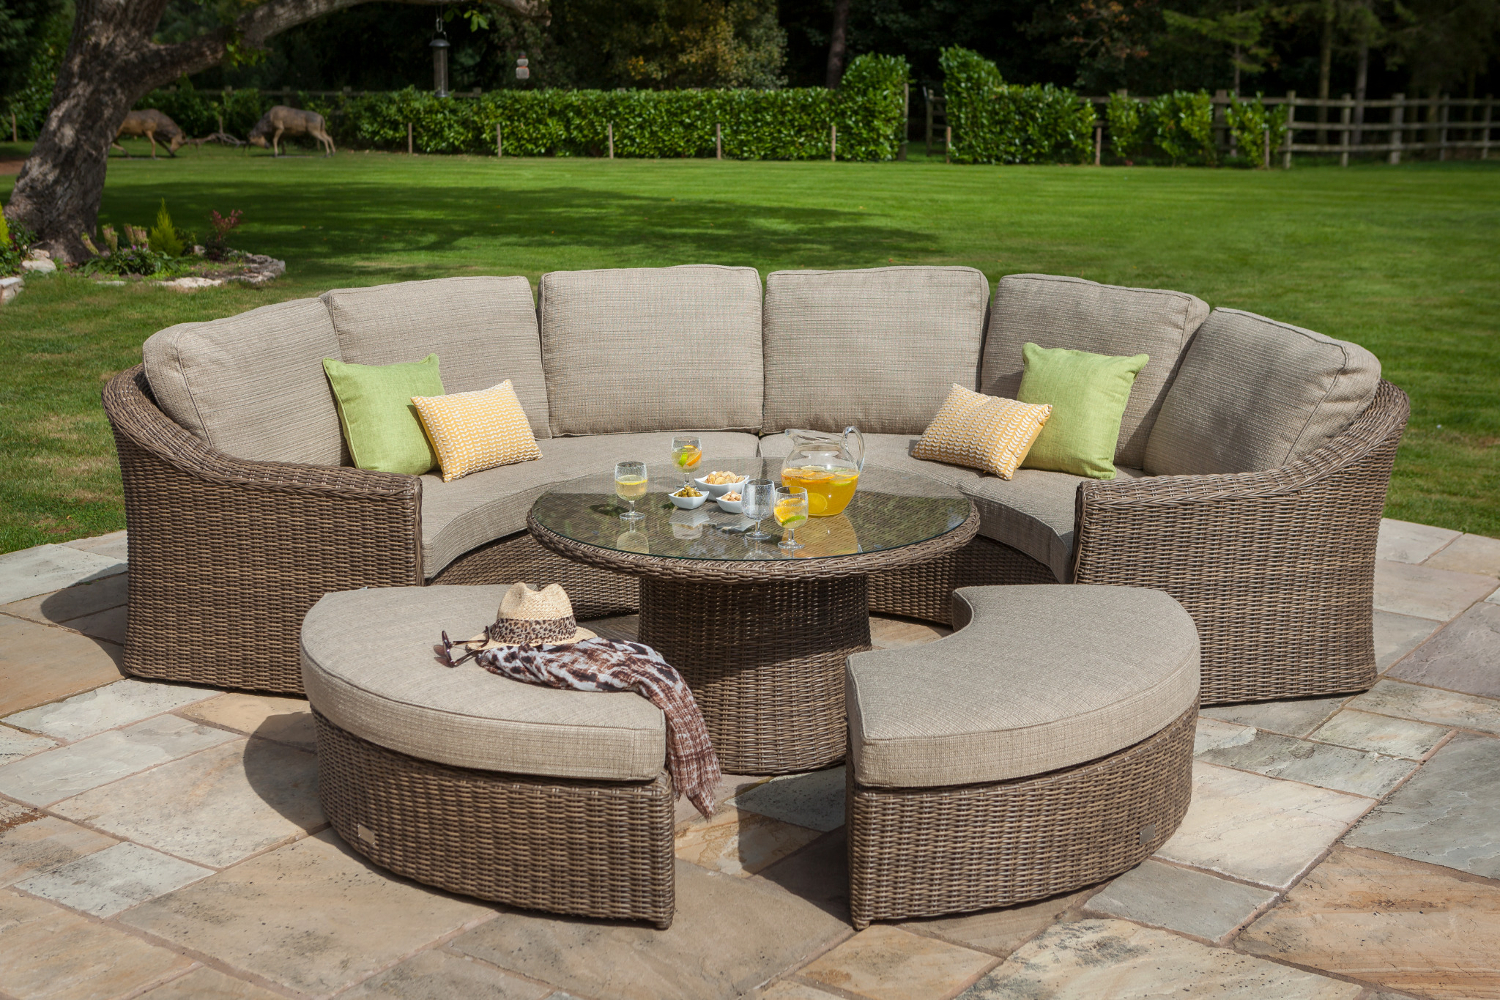 Small image of hartman bali curved lounge weave furniture set in chestnut tweed